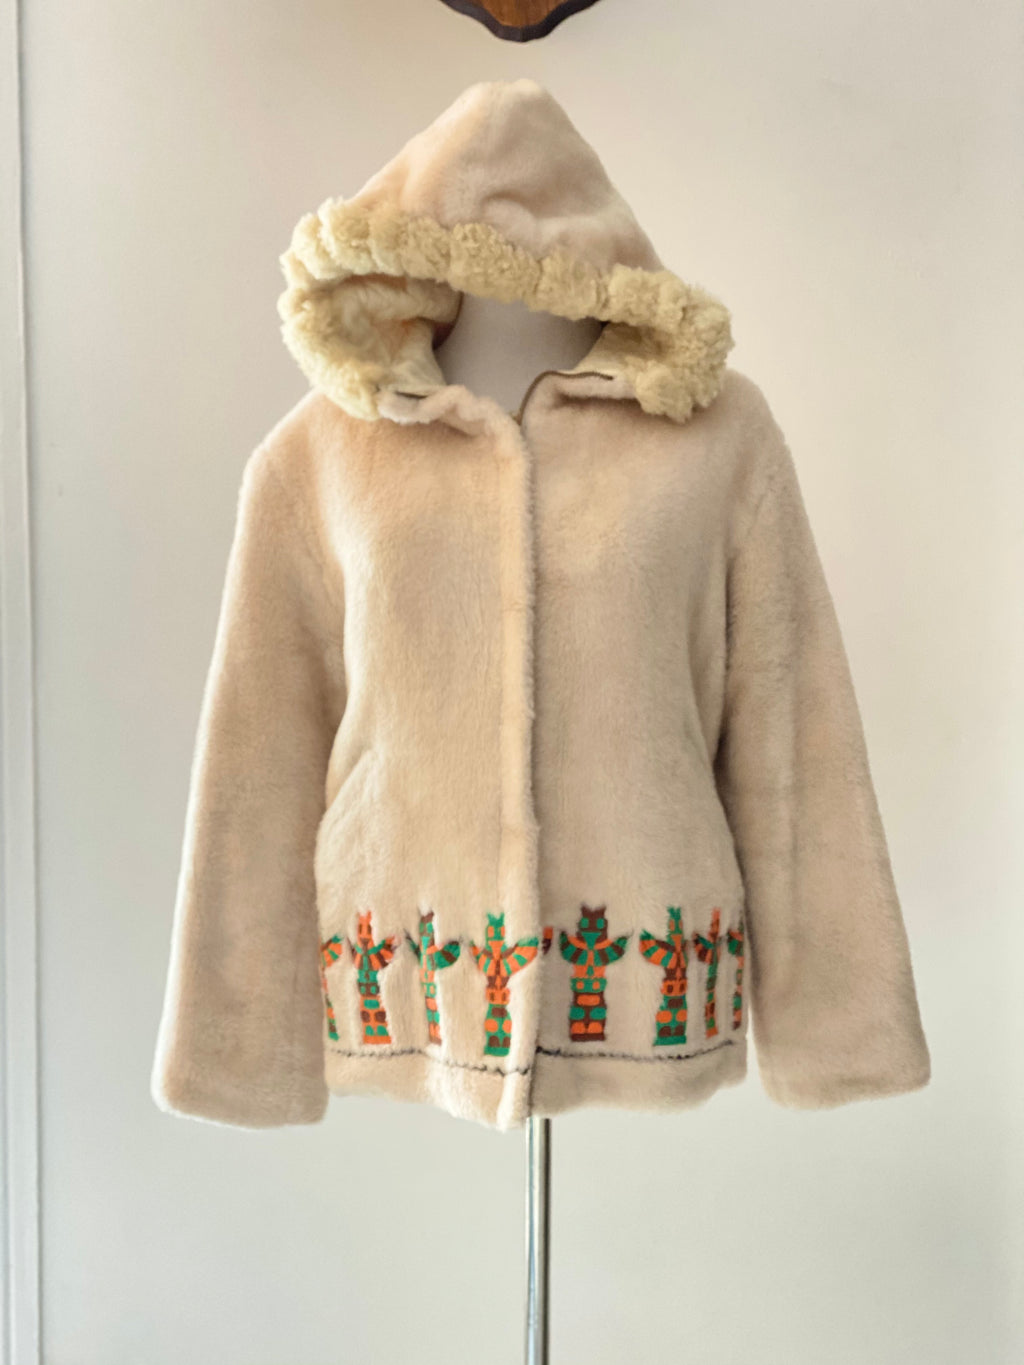 60's Faux White Fur Parka Jacket by Lydia Kul-E-Tuk with NW Totem Designs and Sheepskin Shearling Trim on Hood Size Women's Small.